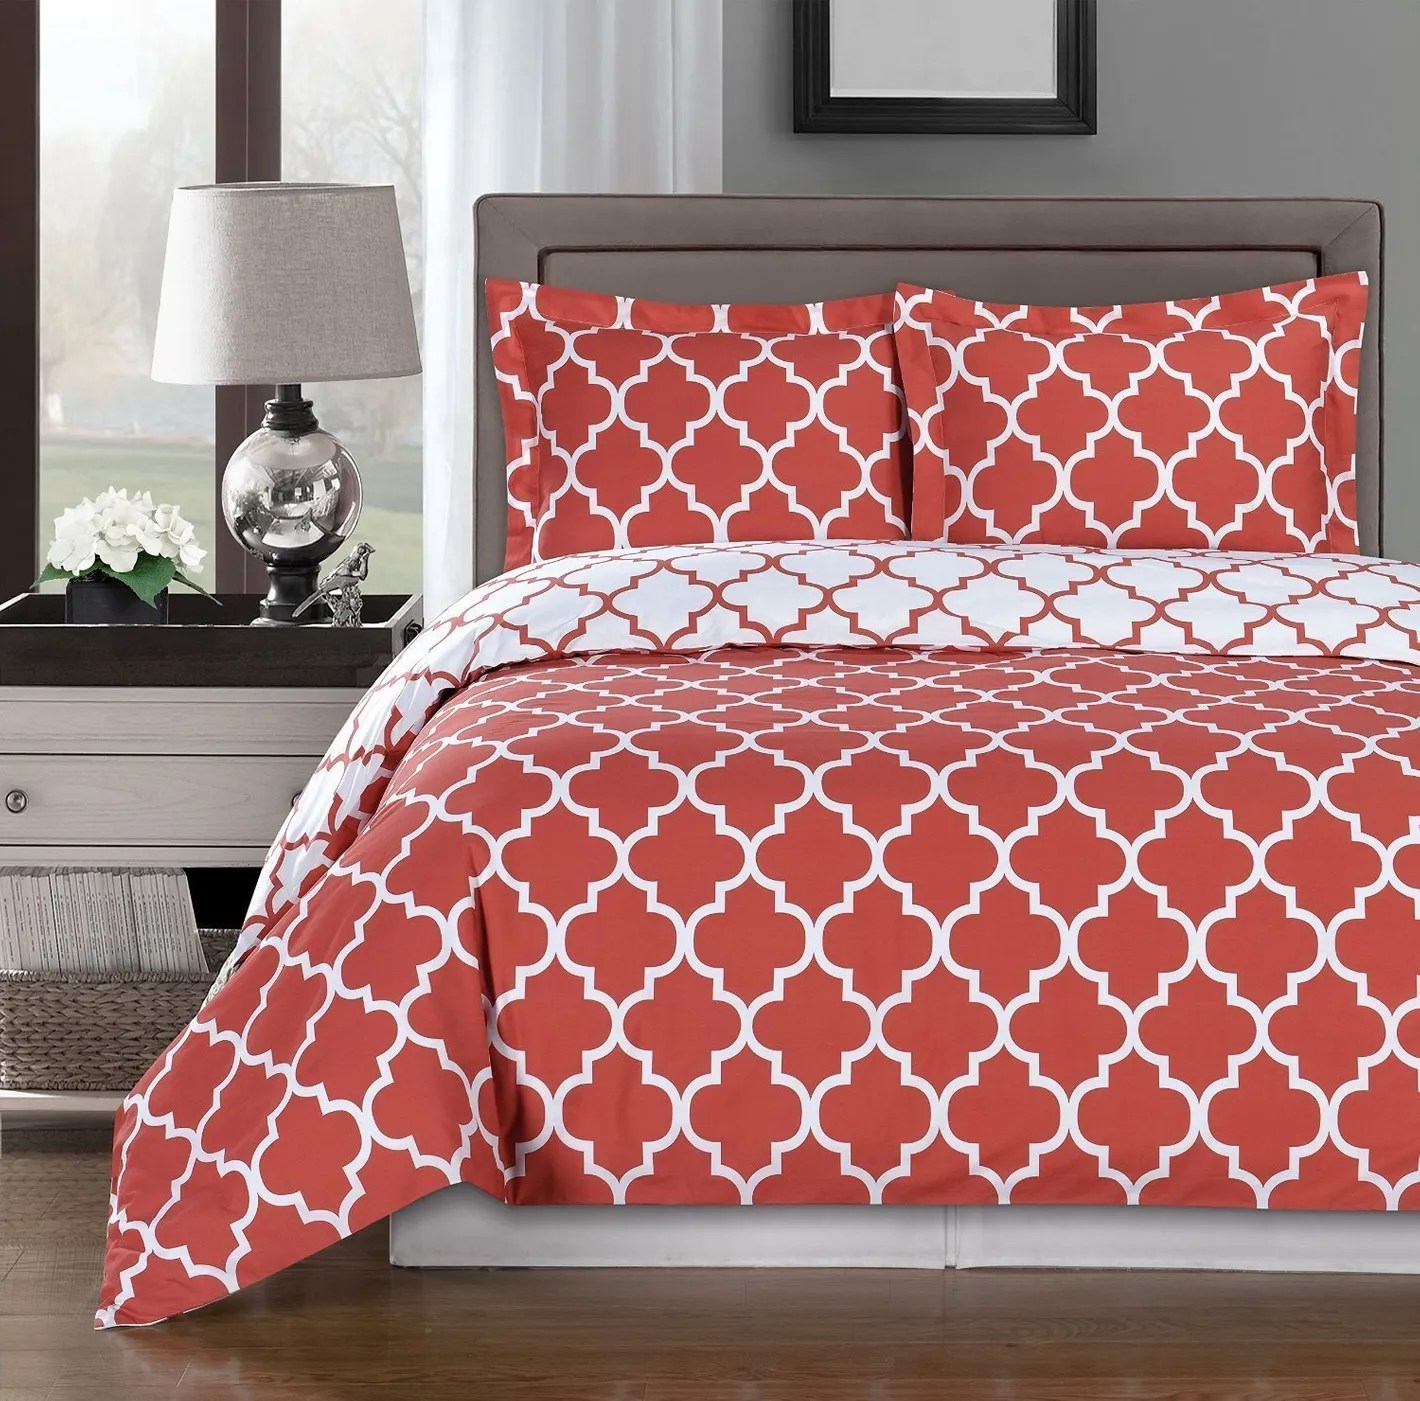 Where To Buy Nice Duvet Covers Royal Hotel Coral And White Meridian Full Queen 3 Piece Duvet Cover Set